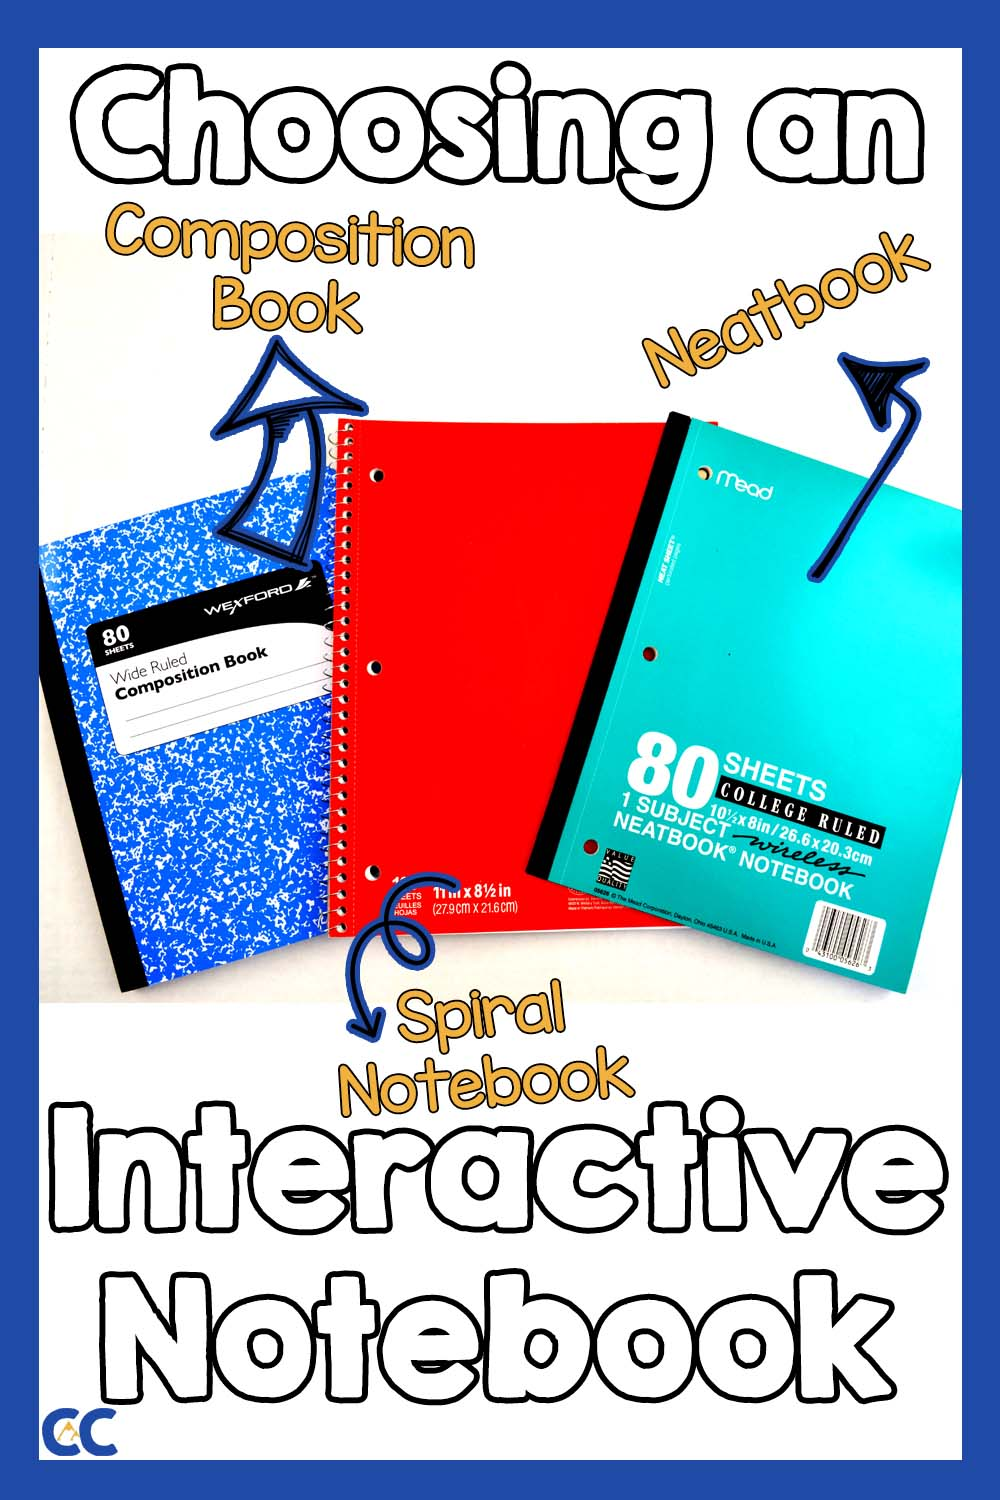 """A composition book, spiral notebook, and neatbook notebook, all labeled, with the text, """"Choosing an Interactive Notebook"""" and The Colorado Classroom logo in the bottom left corner."""